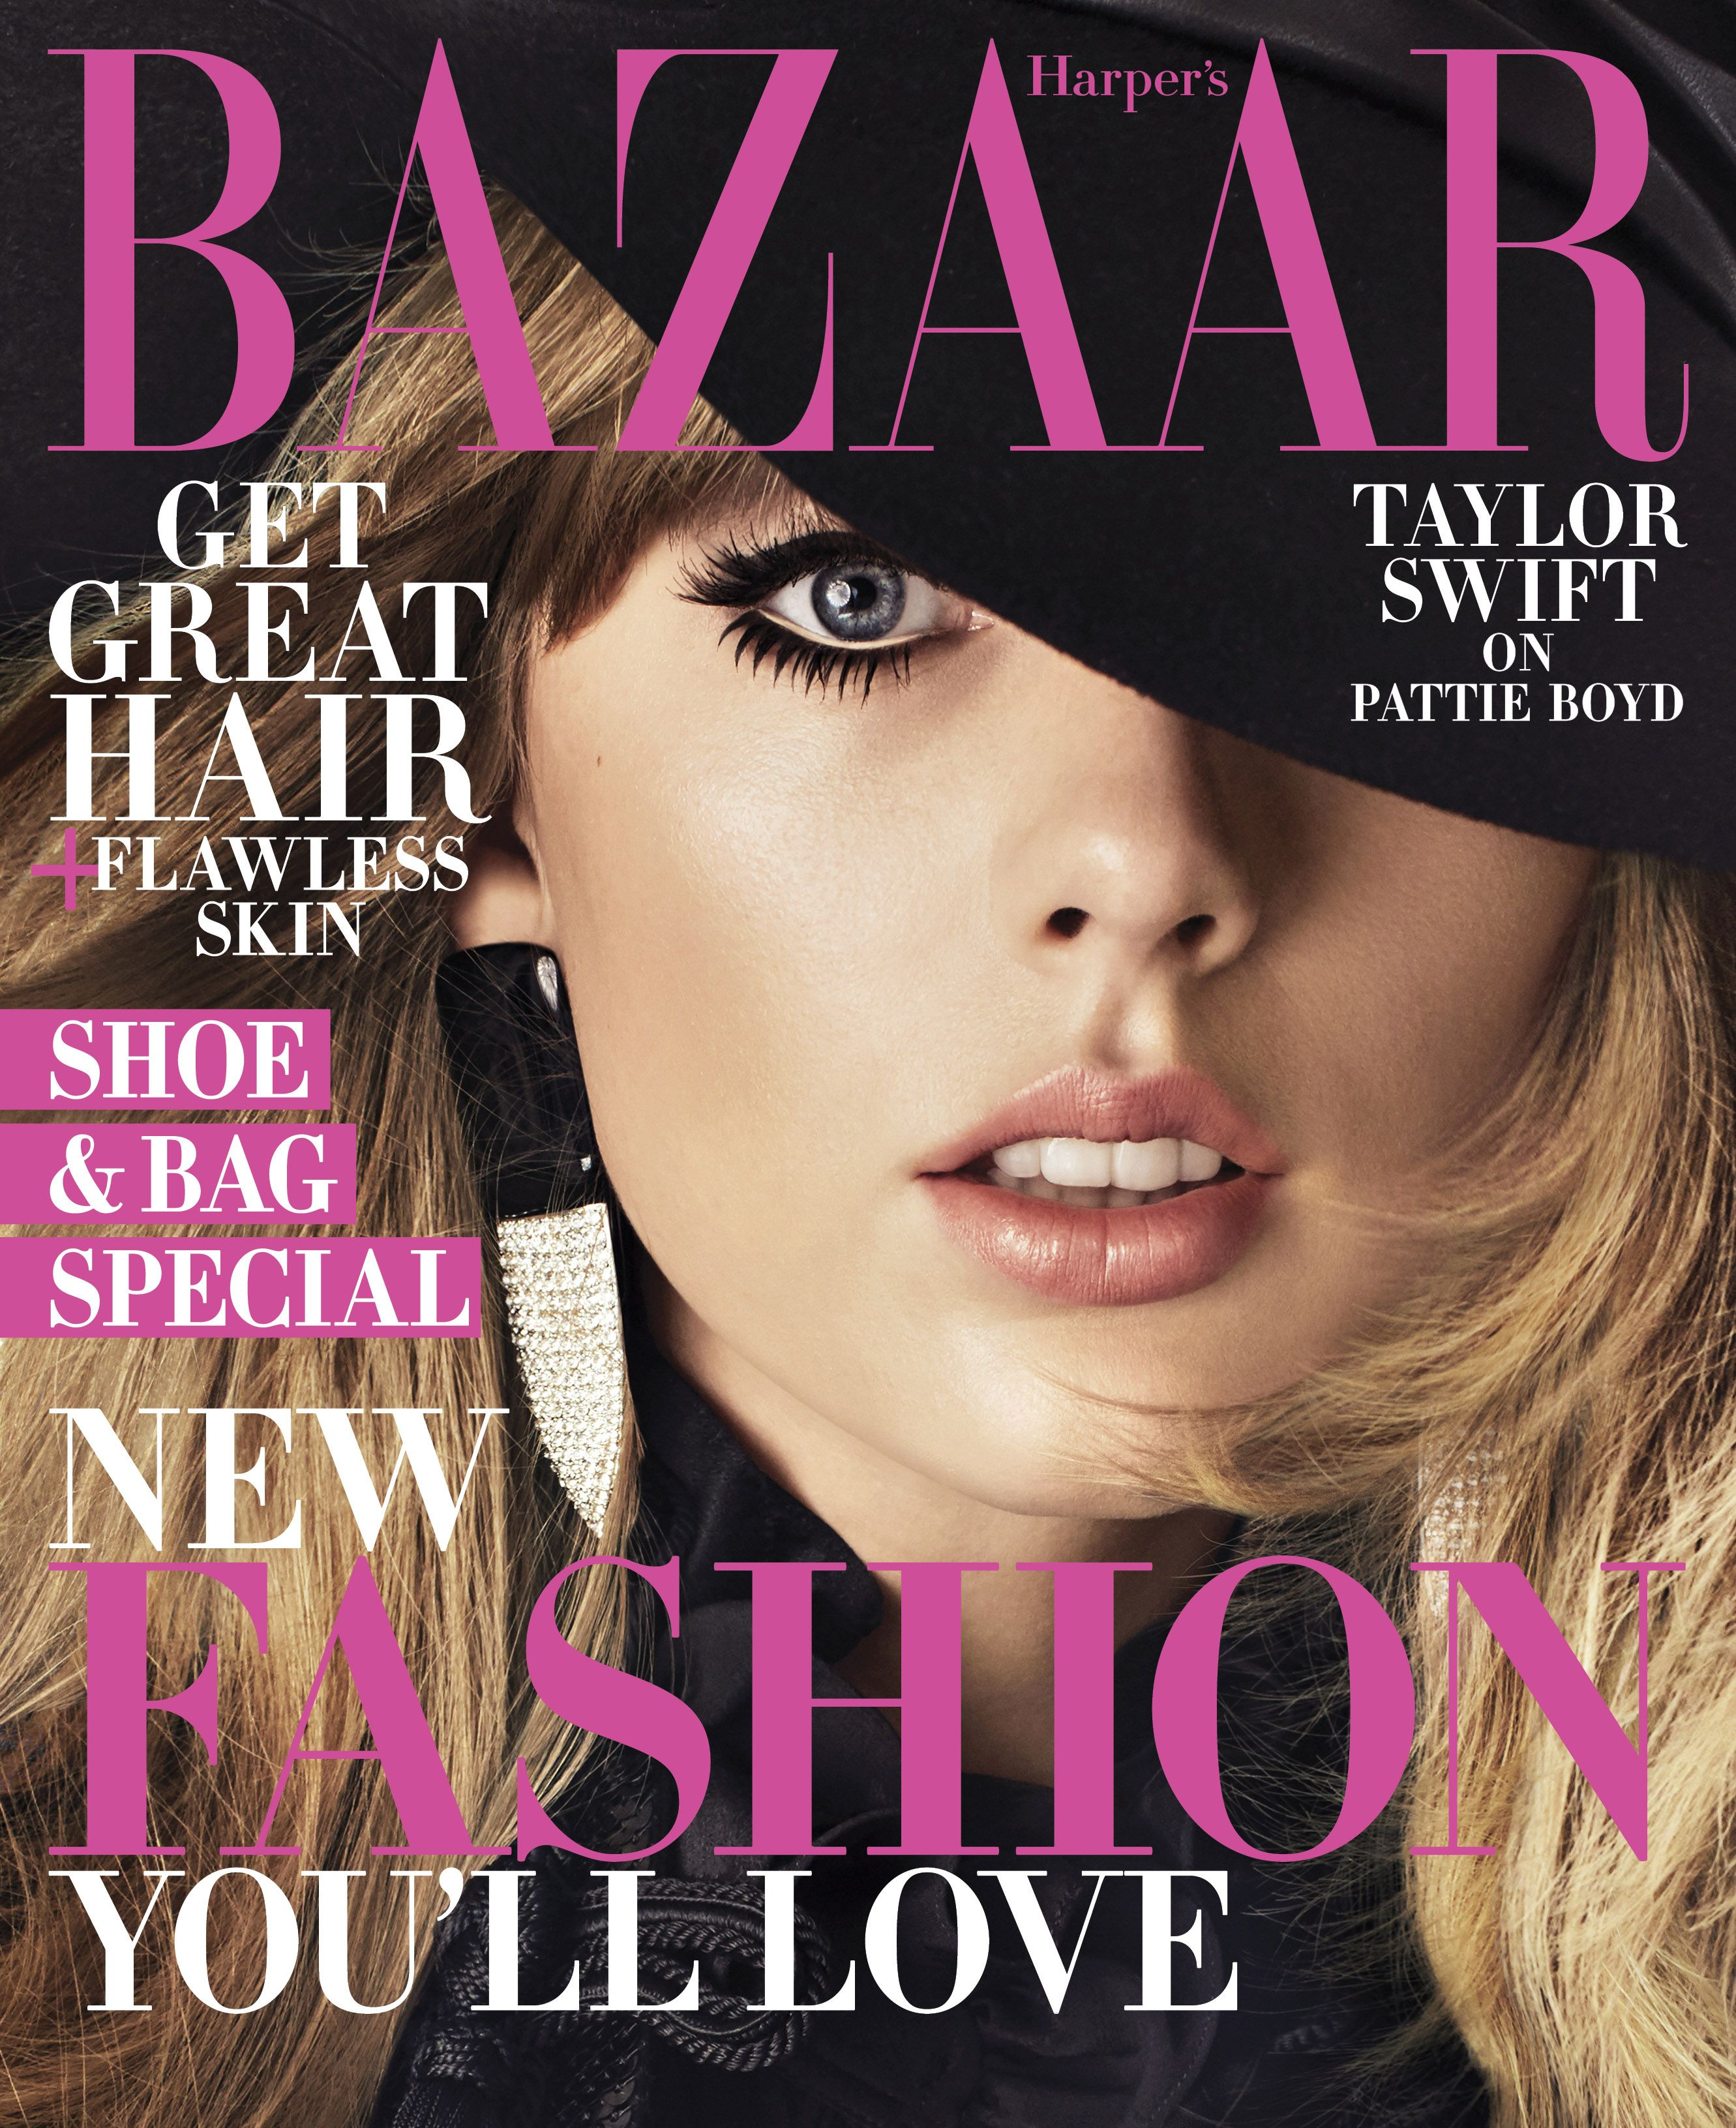 hbz-august-2018-cover-taylor-swift-01-15